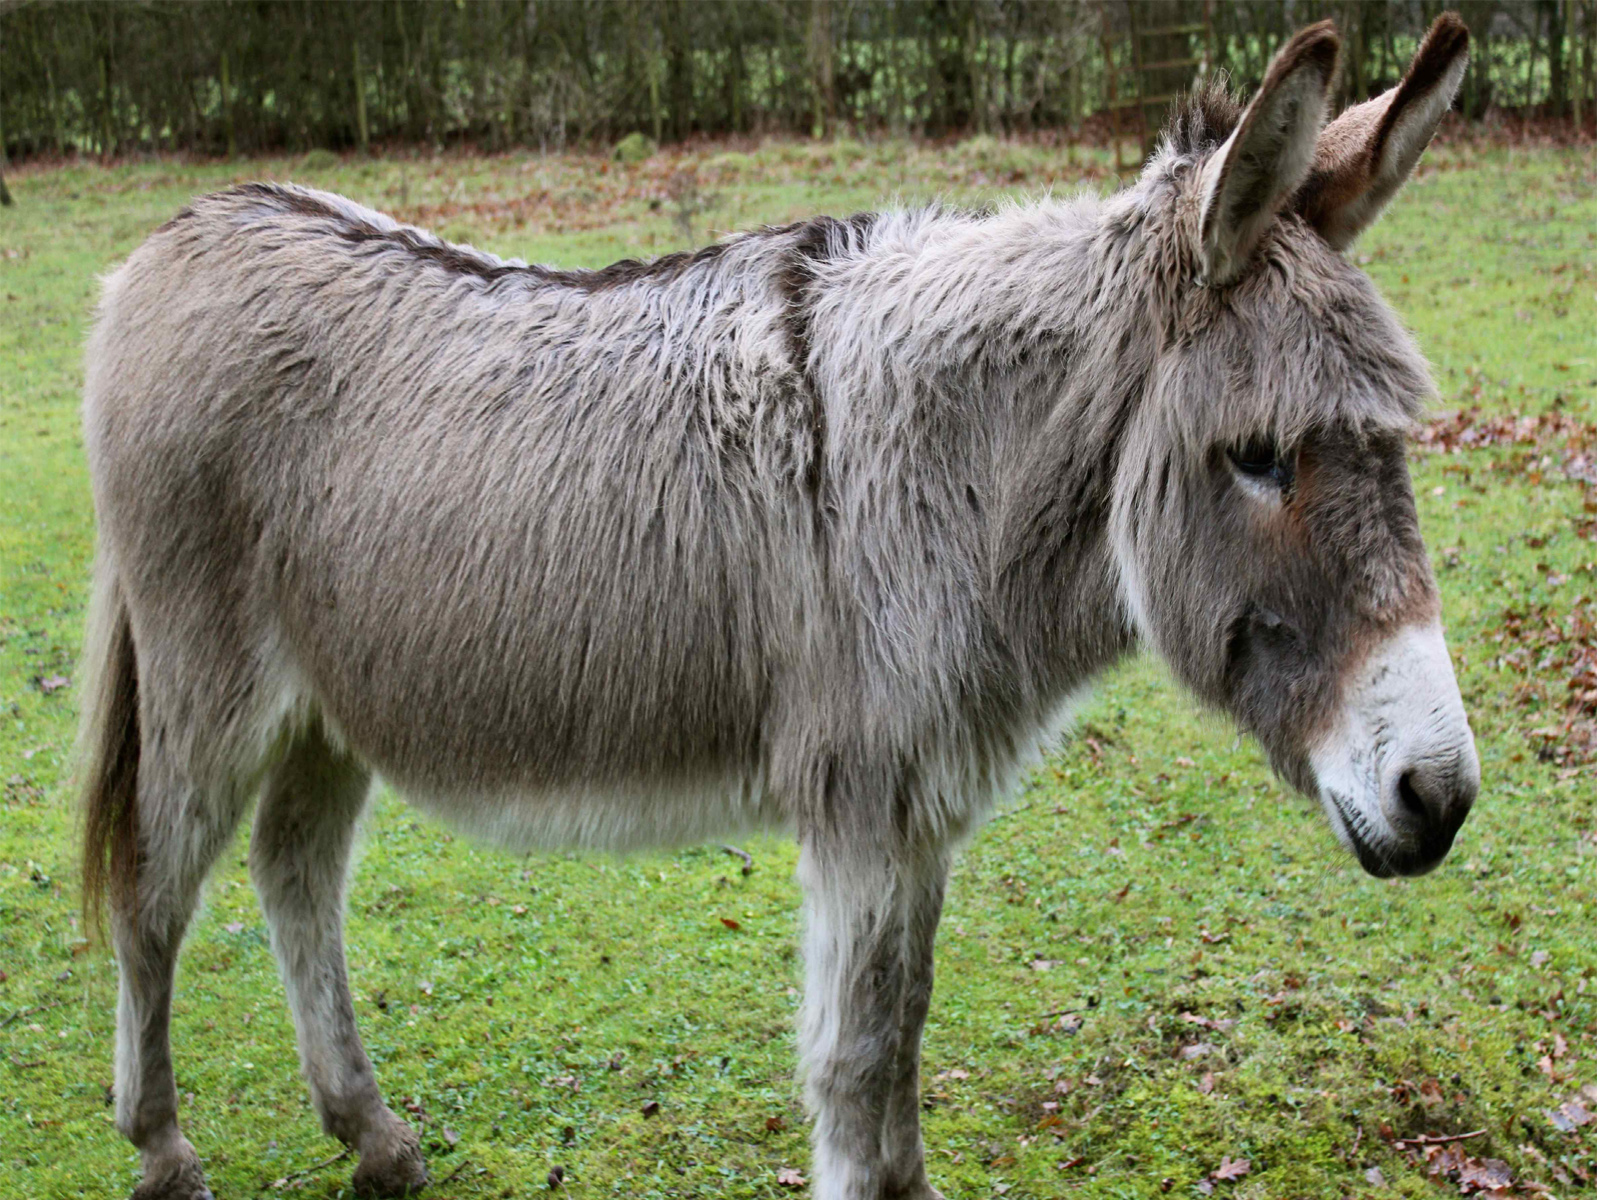 donkey pictures free download